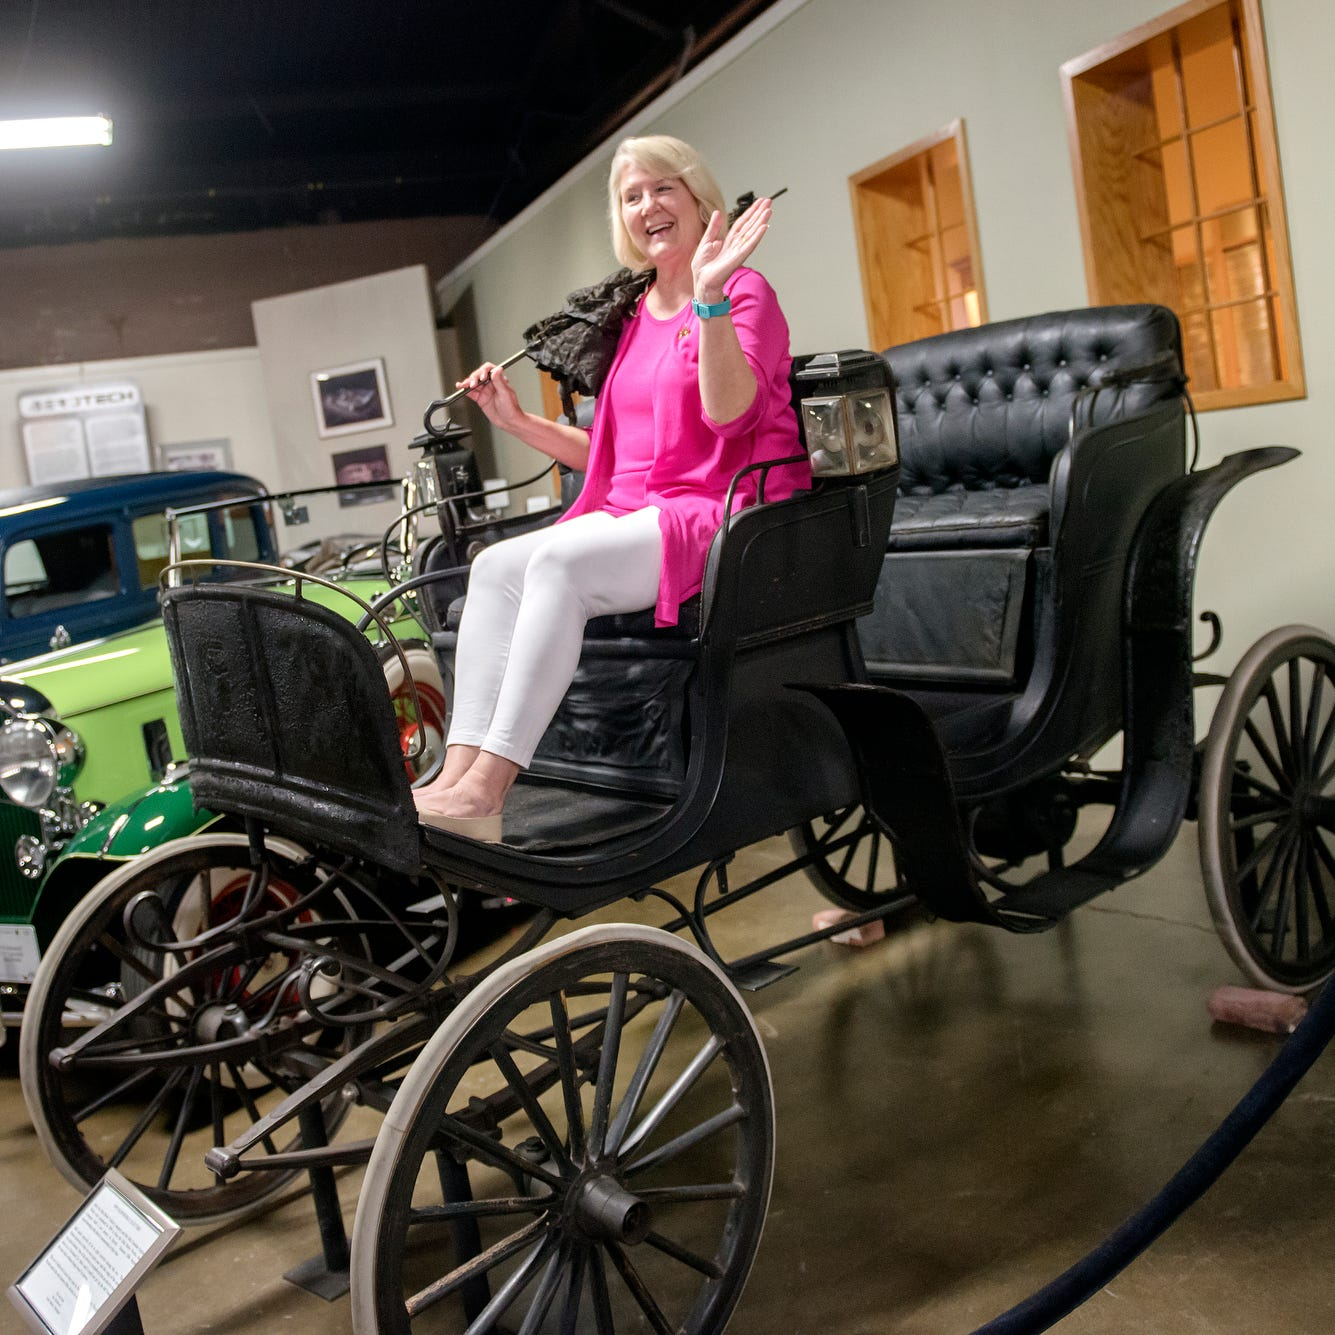 Putnam: This electric car is 119 years old, and it's staying in Lansing where it belongs